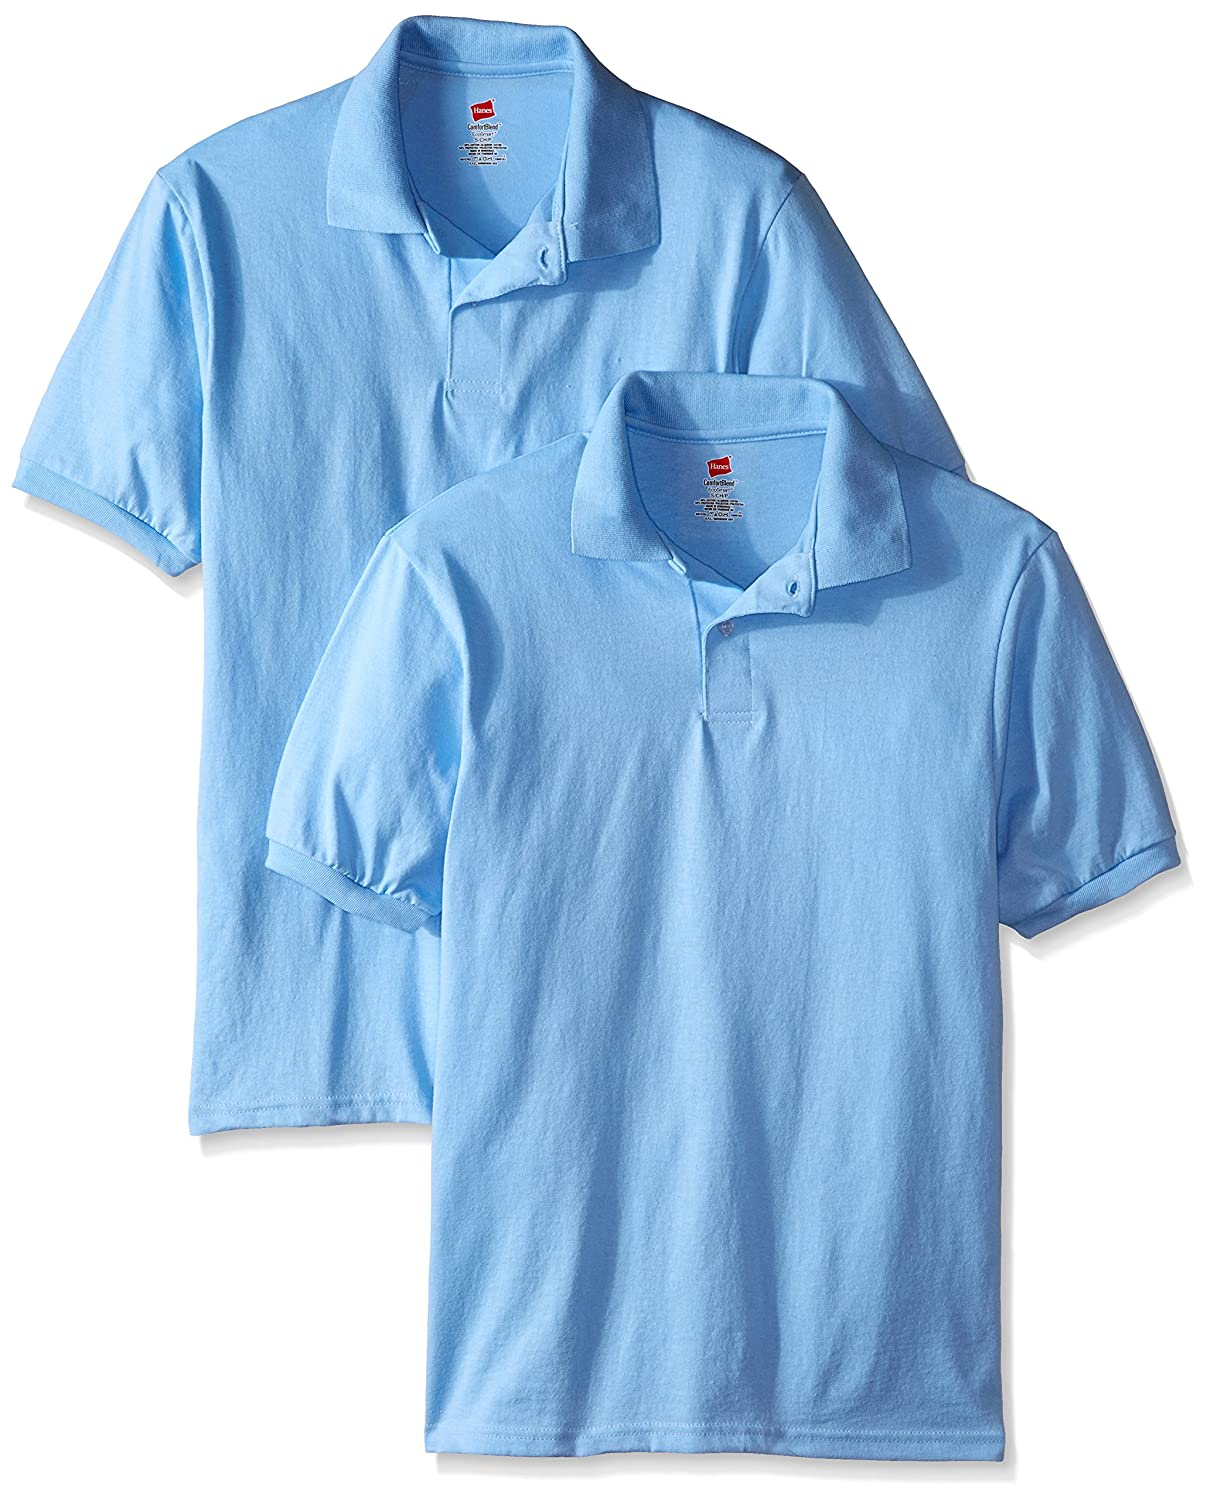 Hanes Men's Short Sleeve Jersey Polo (Pack of 2) O054X